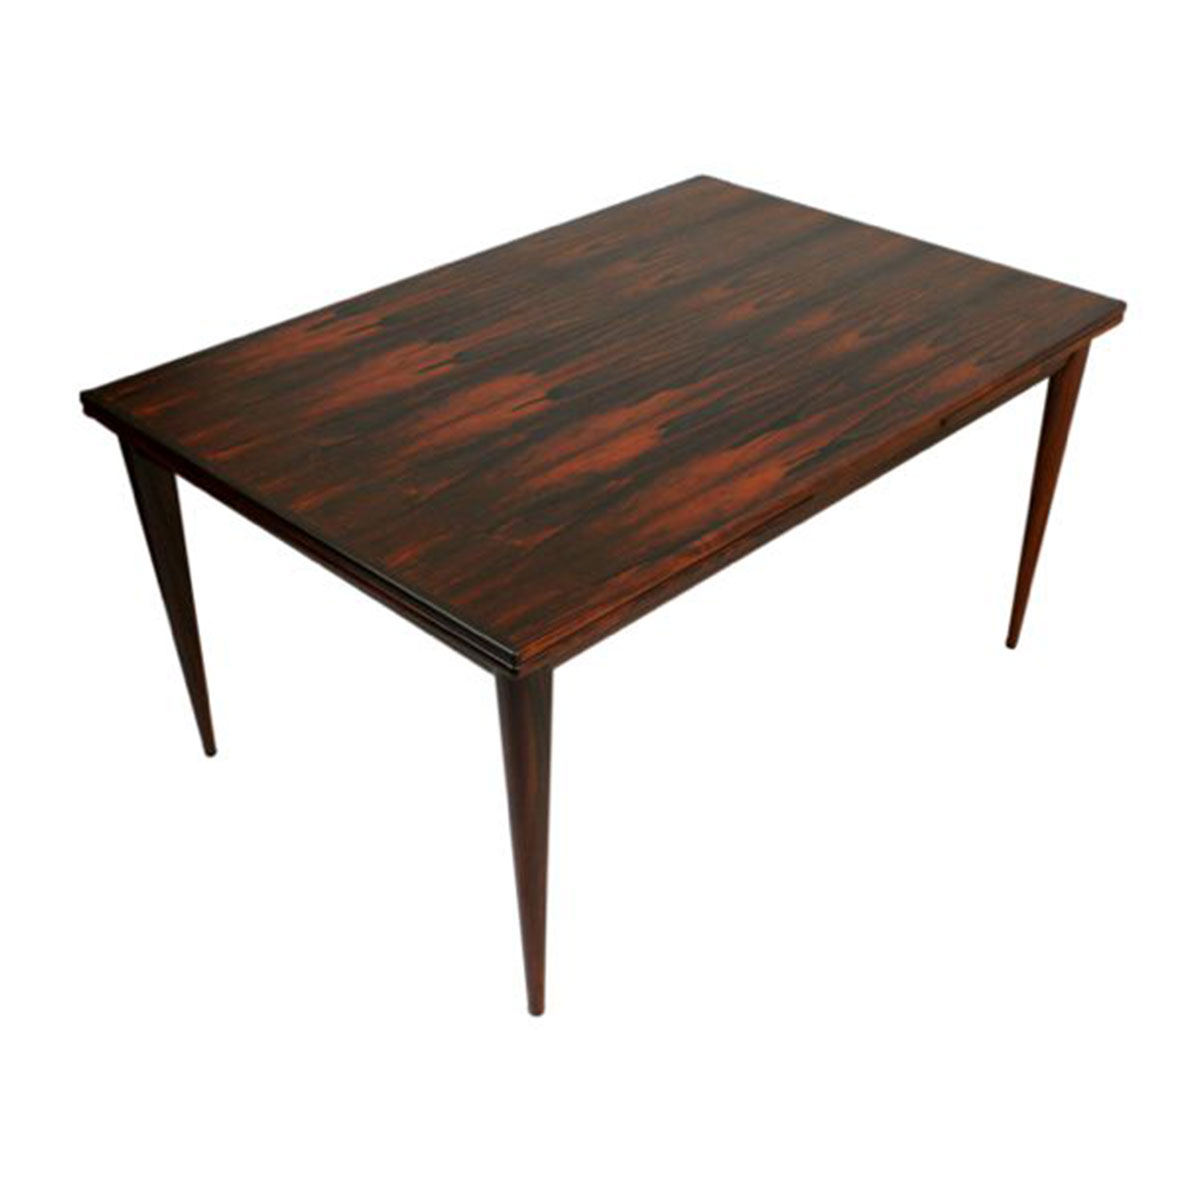 Niels O. Moller Danish Modern Rosewood Expanding Dining Table